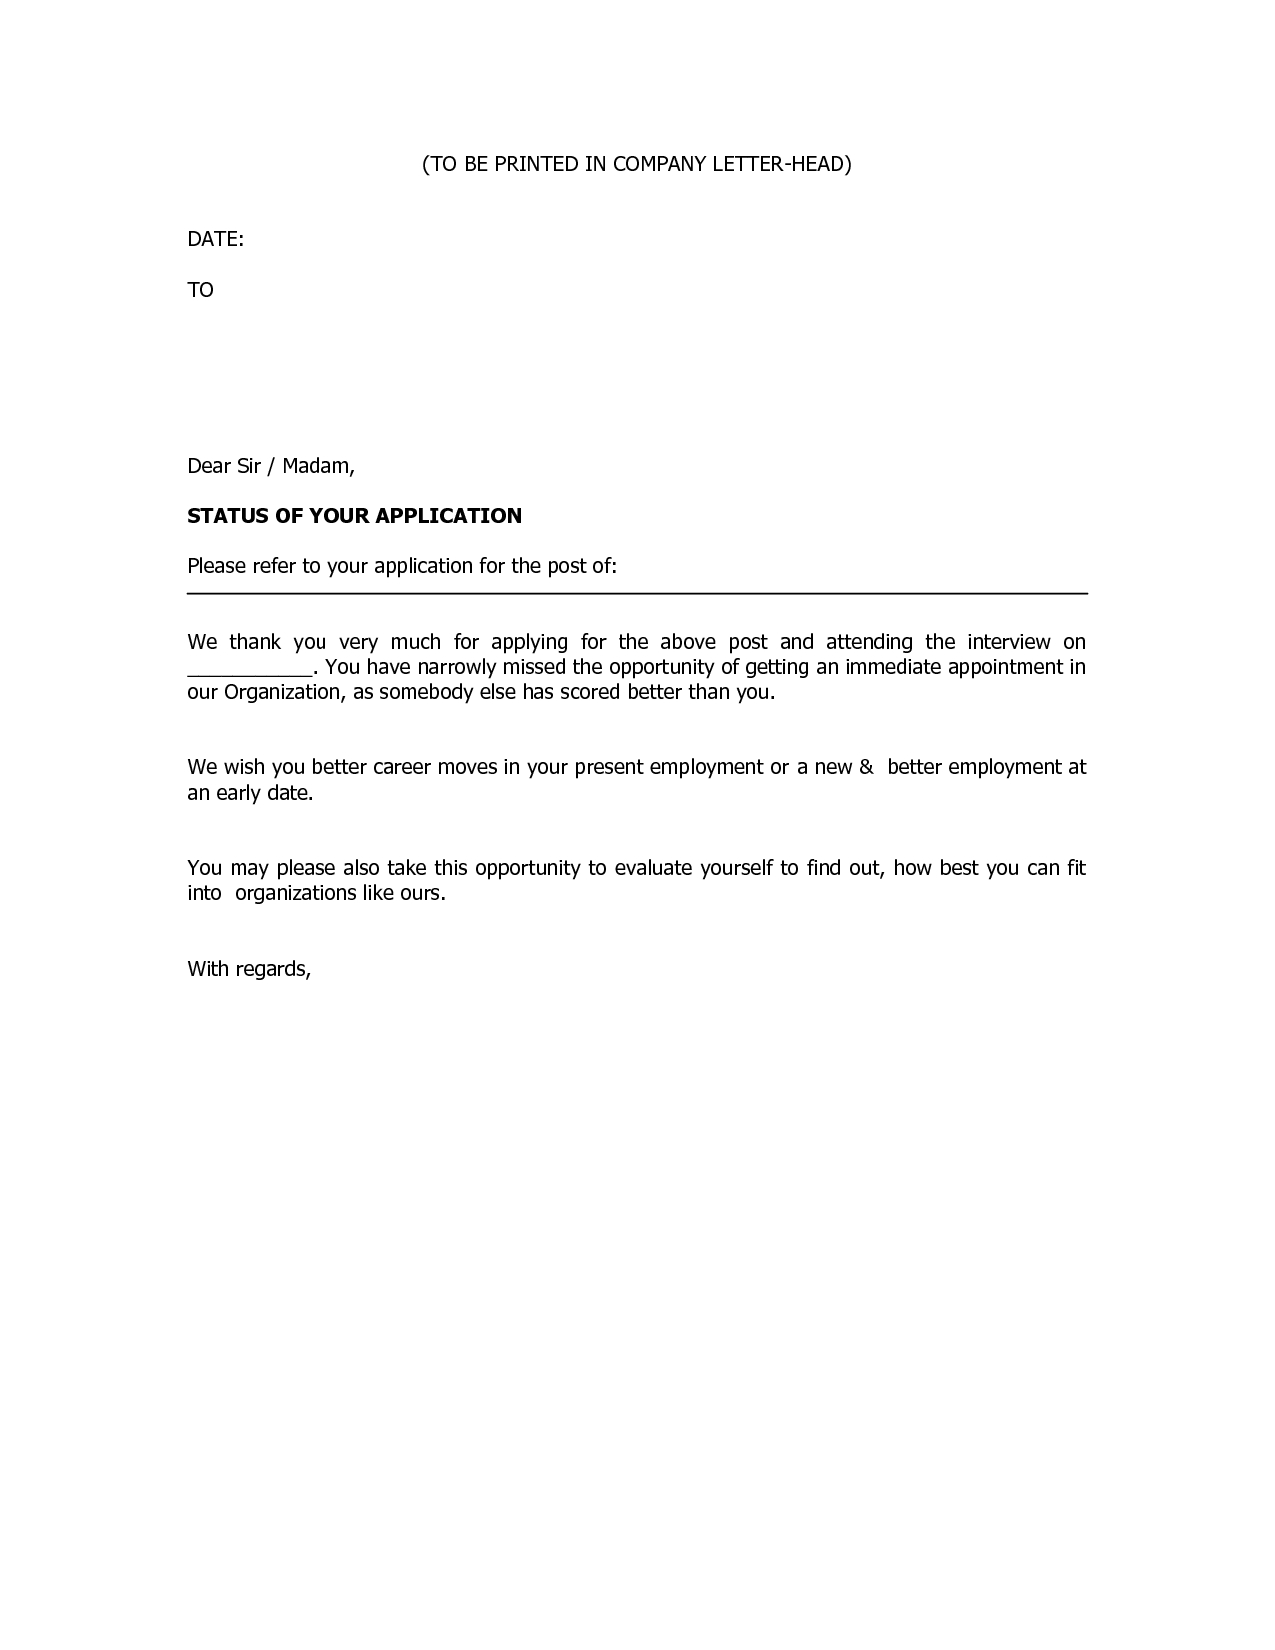 Rejection letter template after interview examples letter templates rejection letter template after interview altavistaventures Gallery